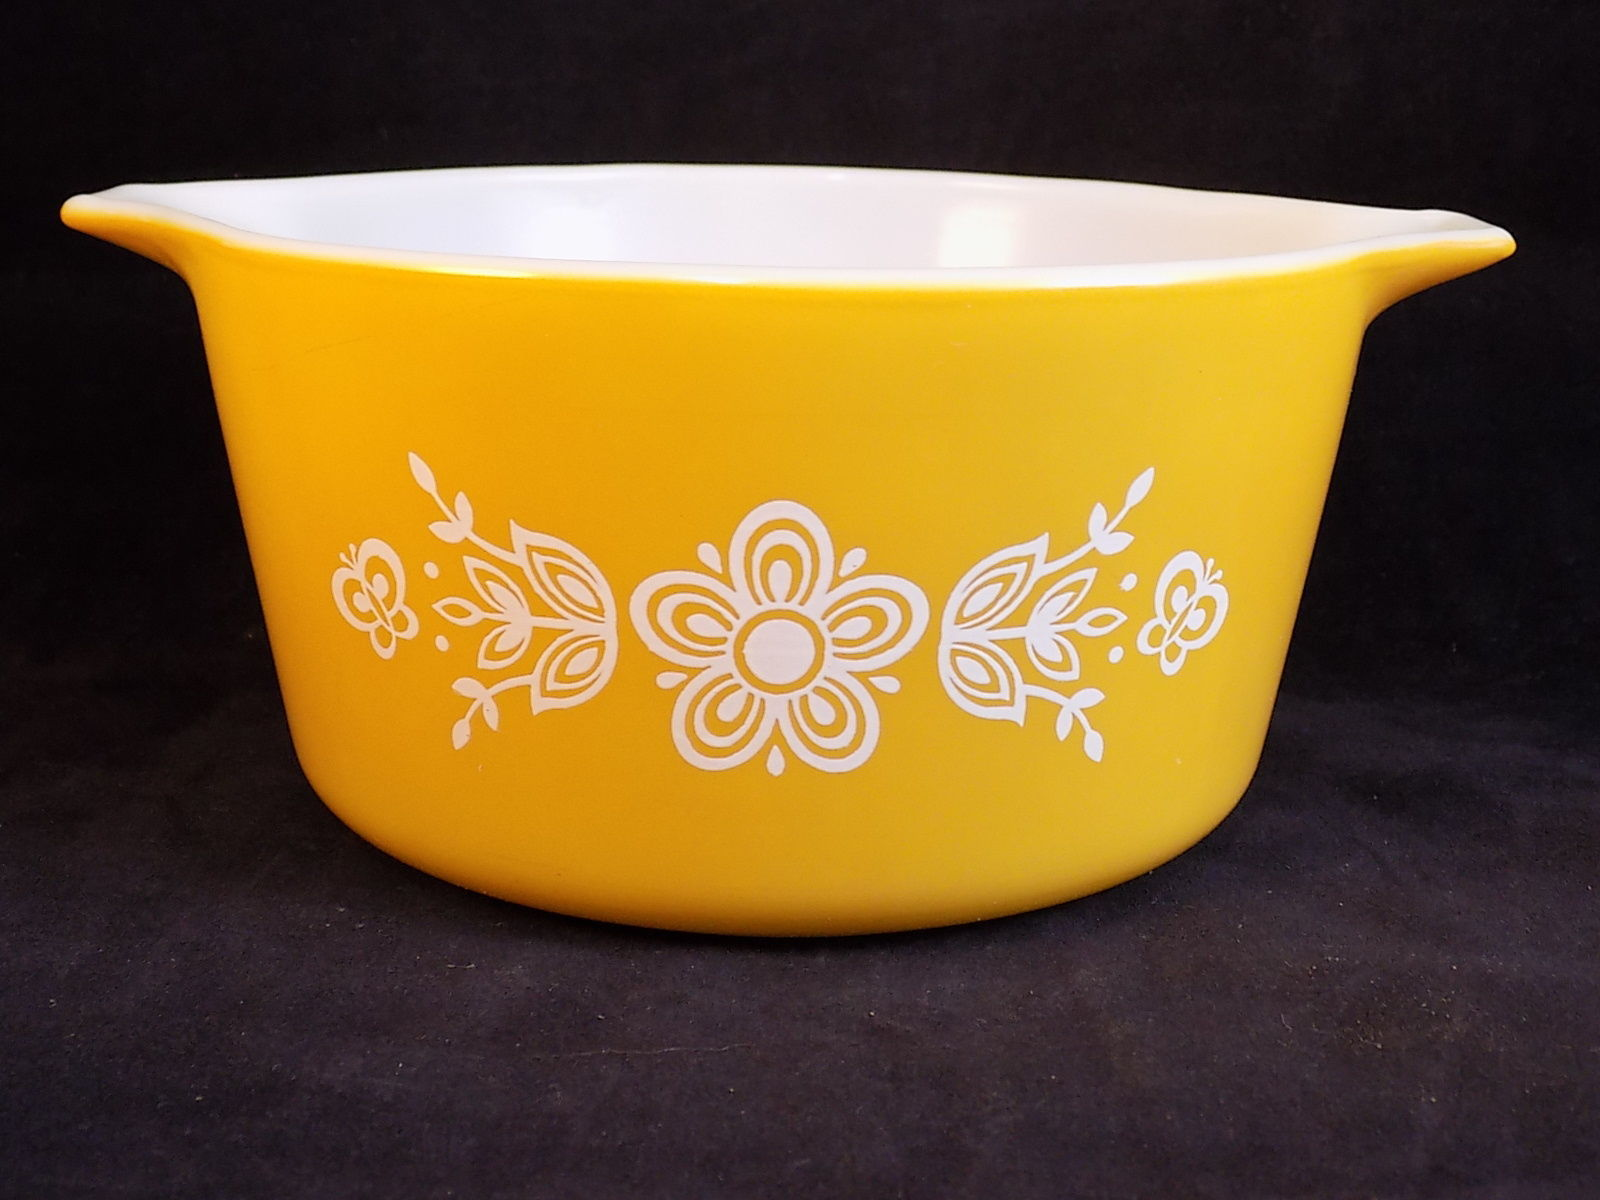 Vintage PYREX 1 Quart BUTTERFLY GOLD Dish #473 Ovenware Mixing Casserole Dish